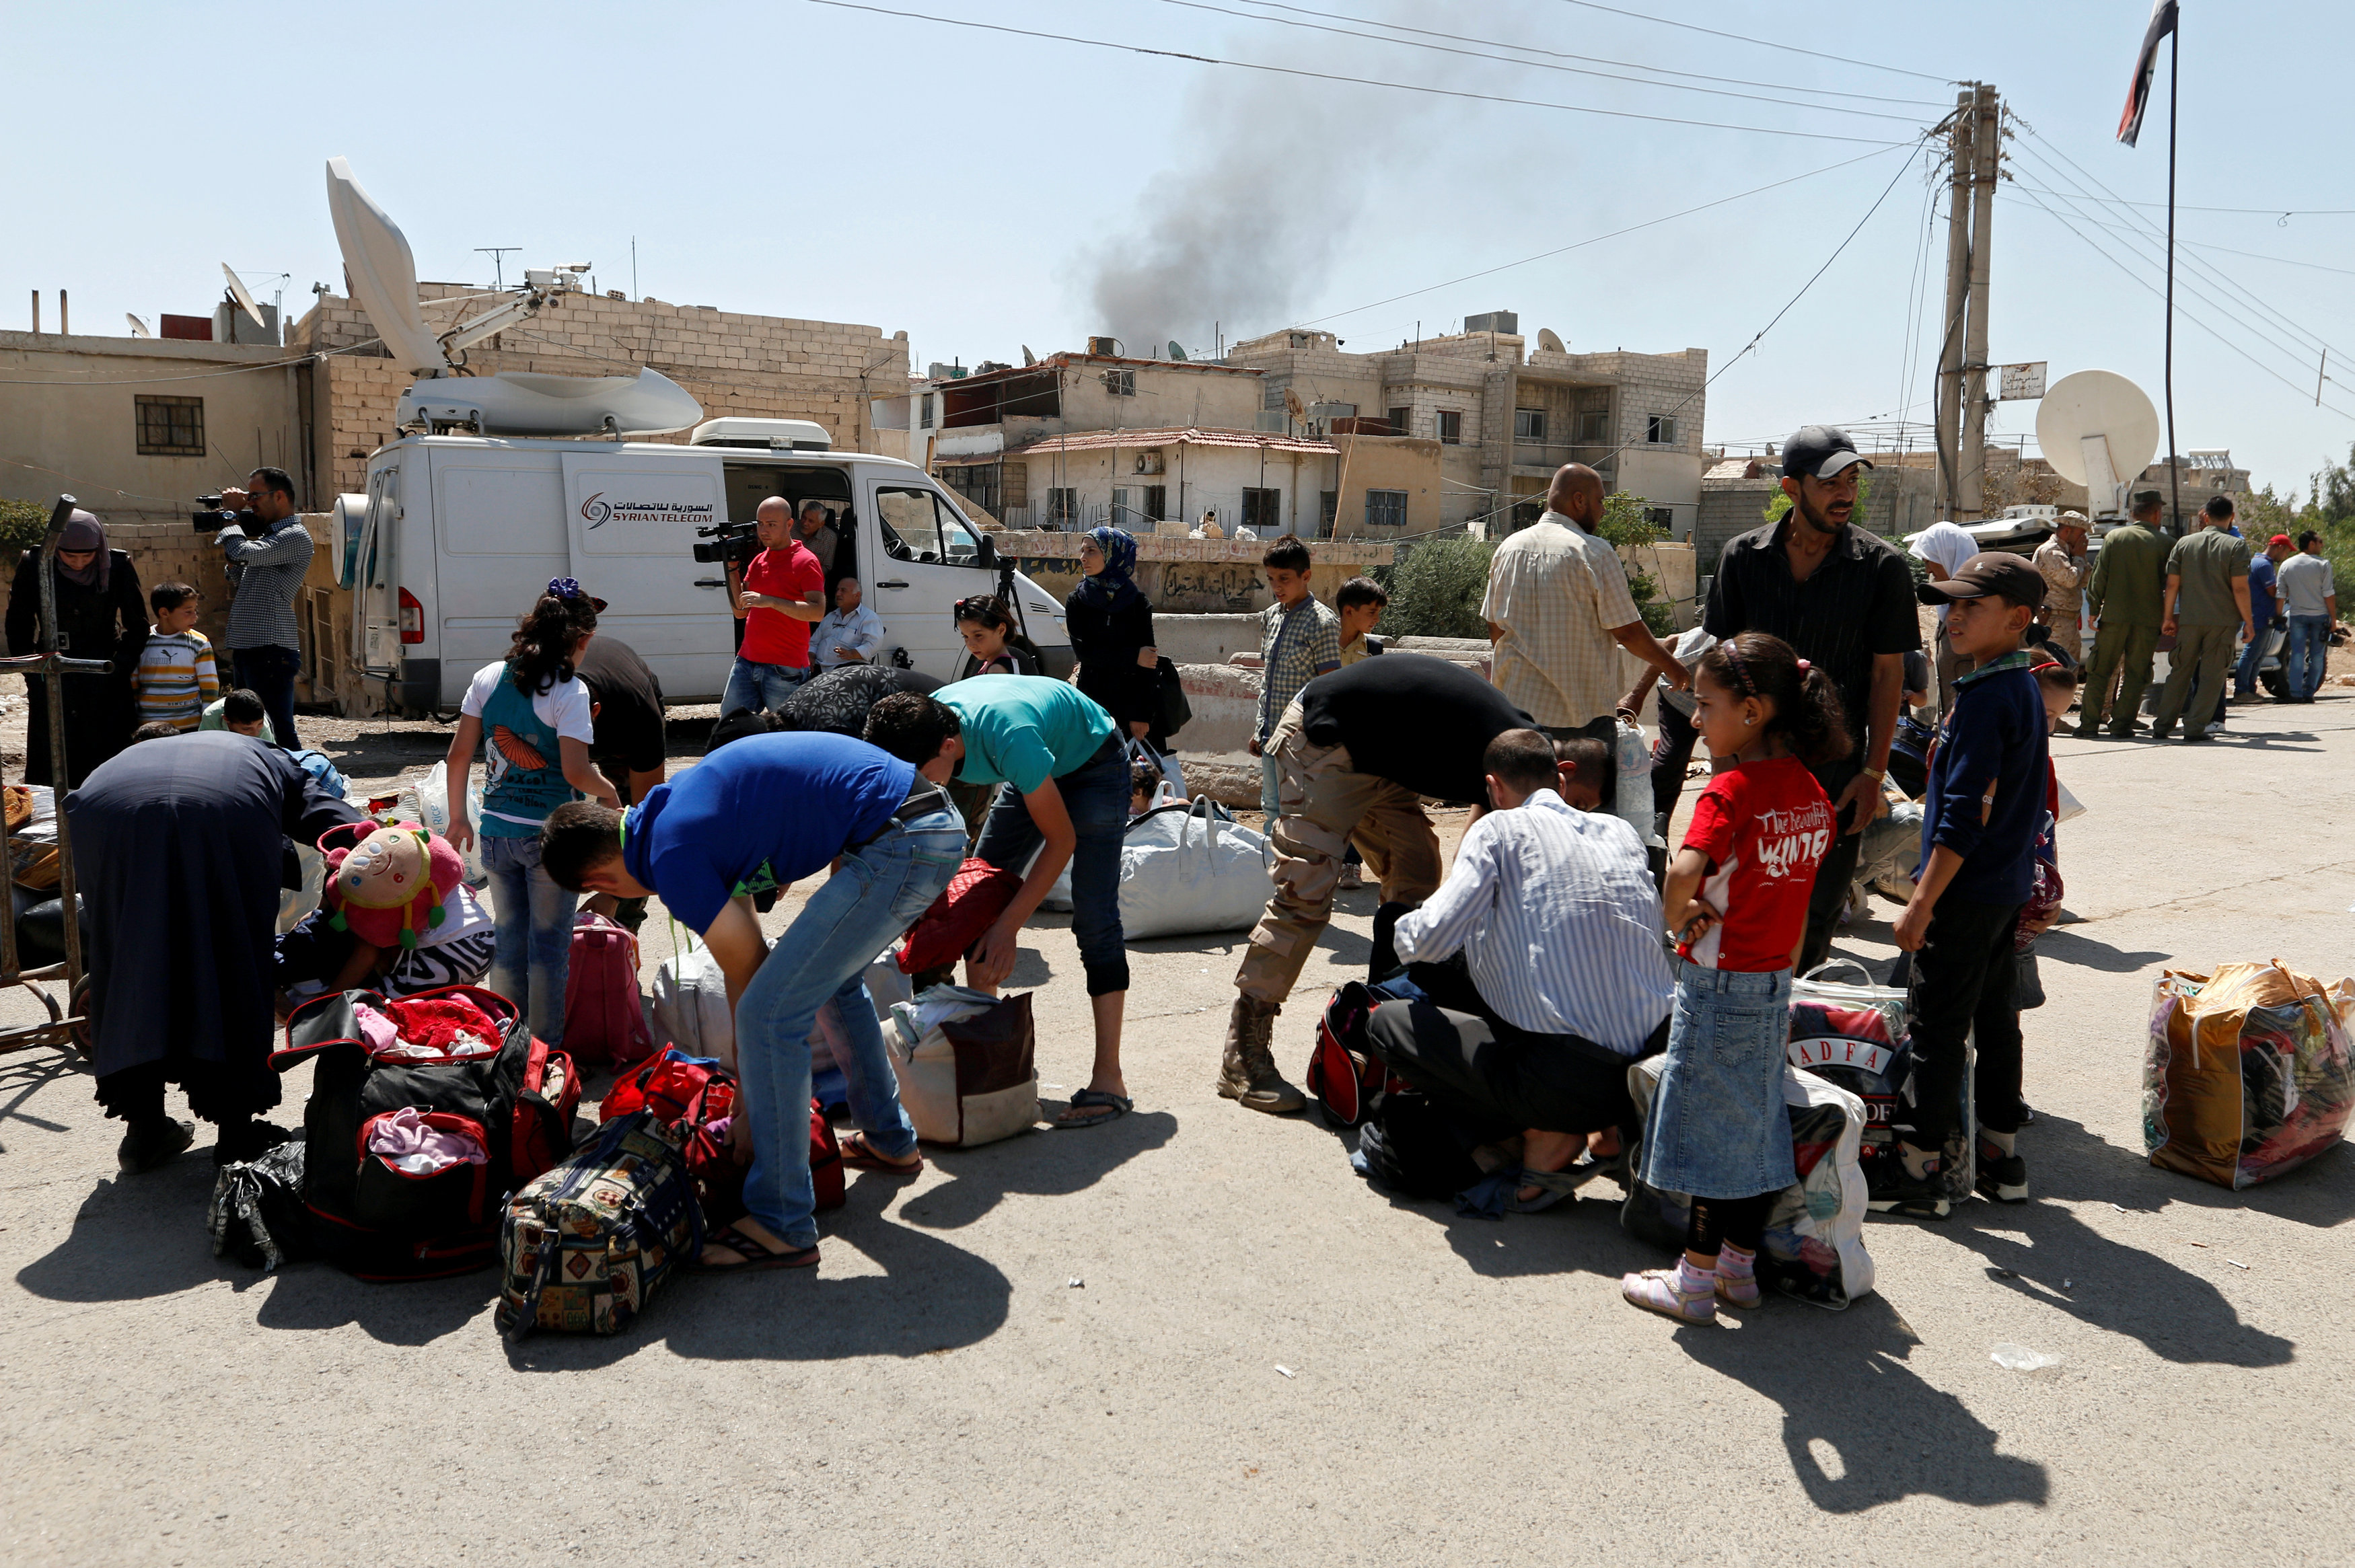 Civilians get their belongings inspected by Syrian Army soldiers in Daraya before being evacuated, after reports of an agreement between rebels and Syria's army to evacuate civilians and rebel fighters from Moadamiya, in Damascus, Syria September 2, 2016